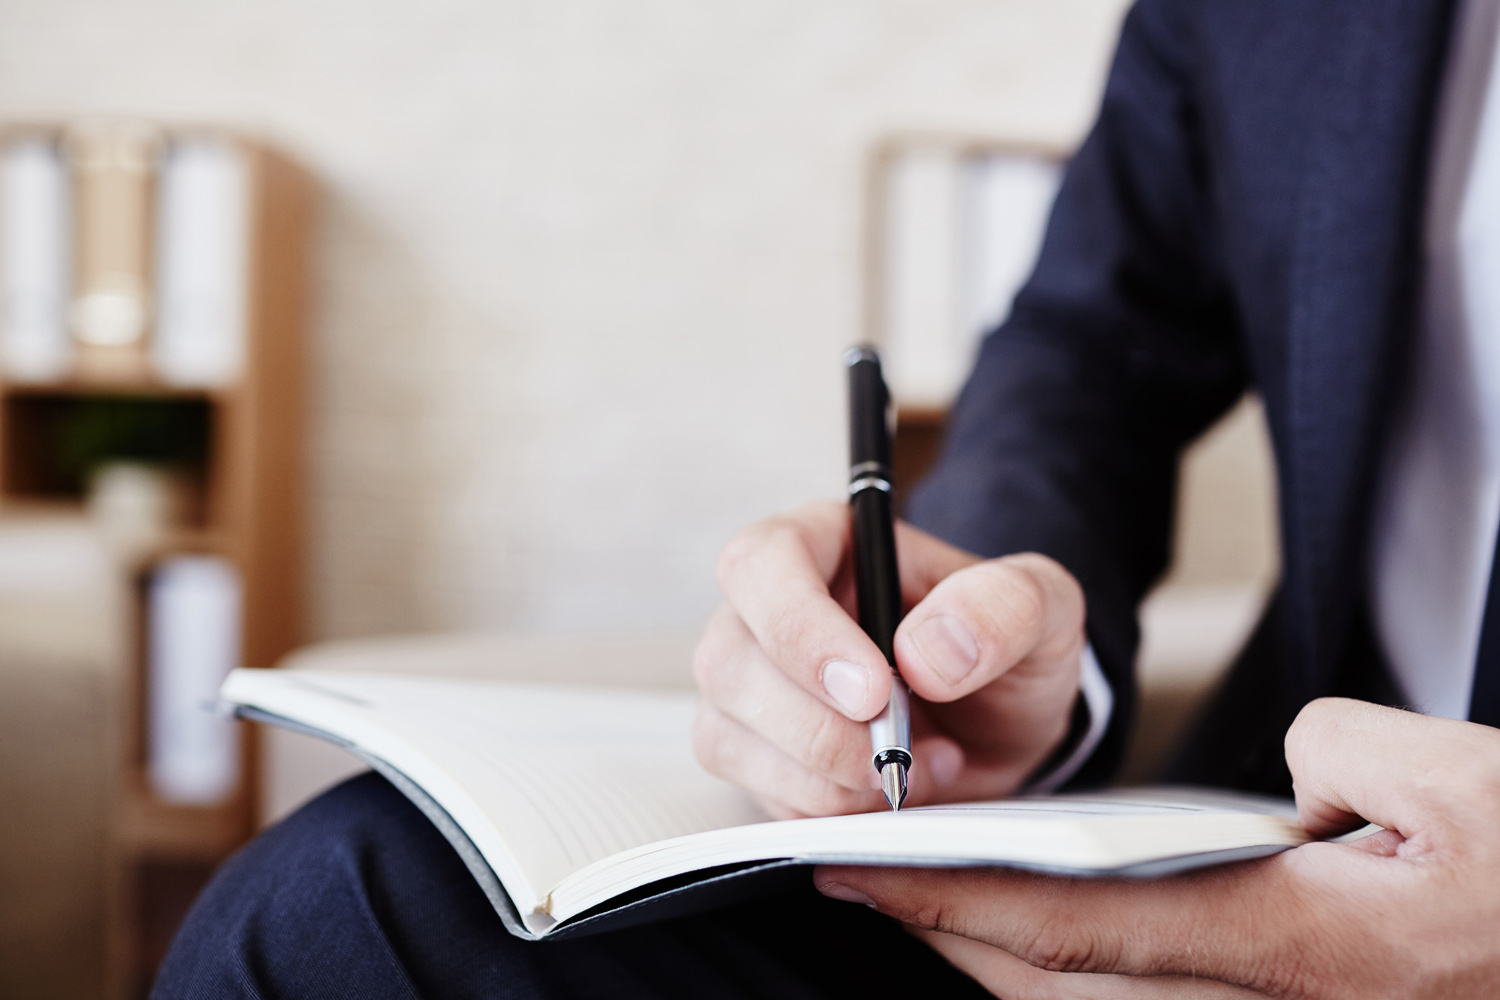 Man in Suit Writing